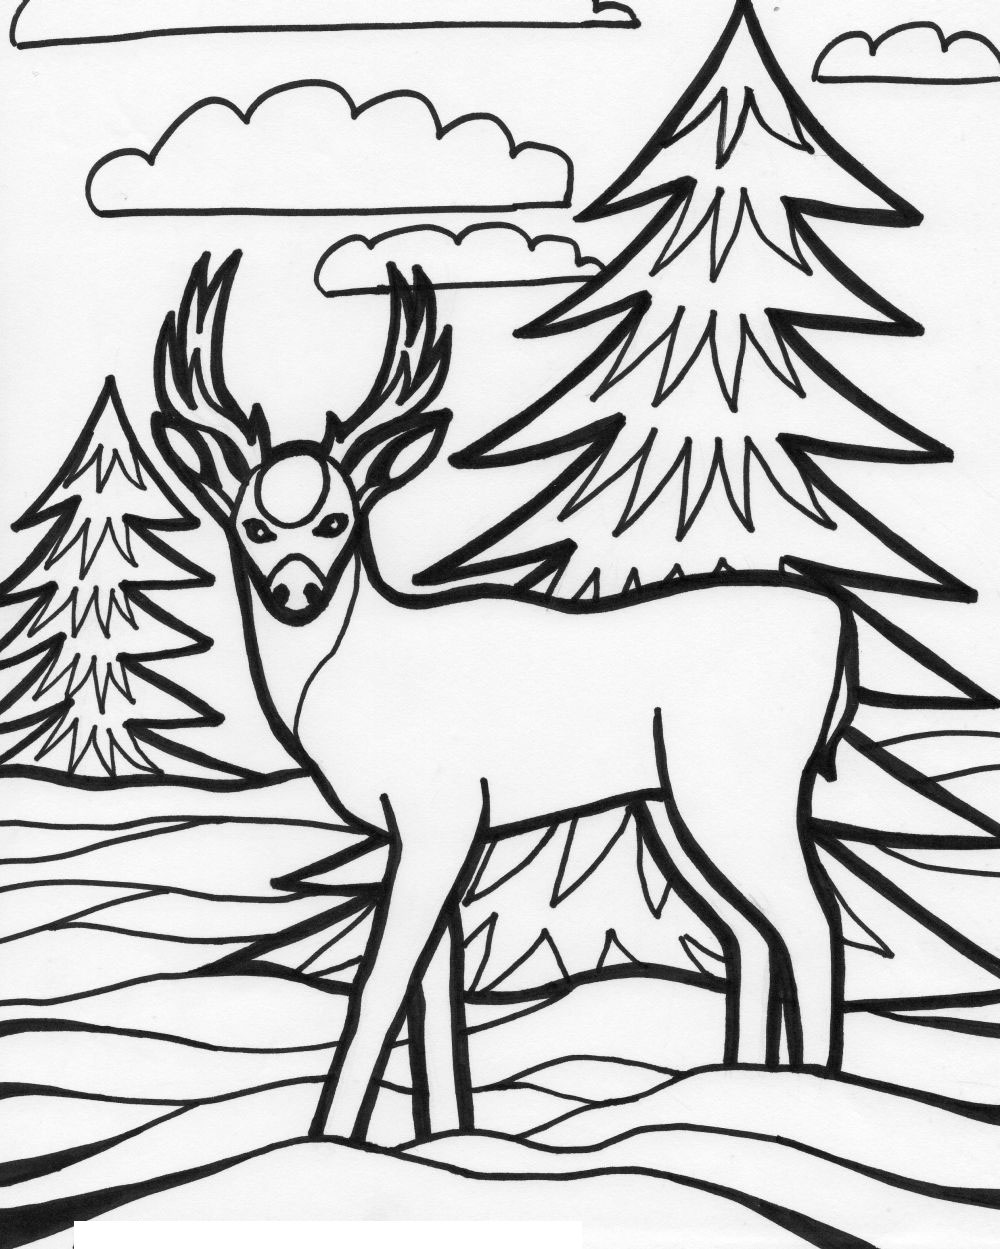 free downloadable coloring pages for education new animal deer coloring pages coloring downloadable pages free